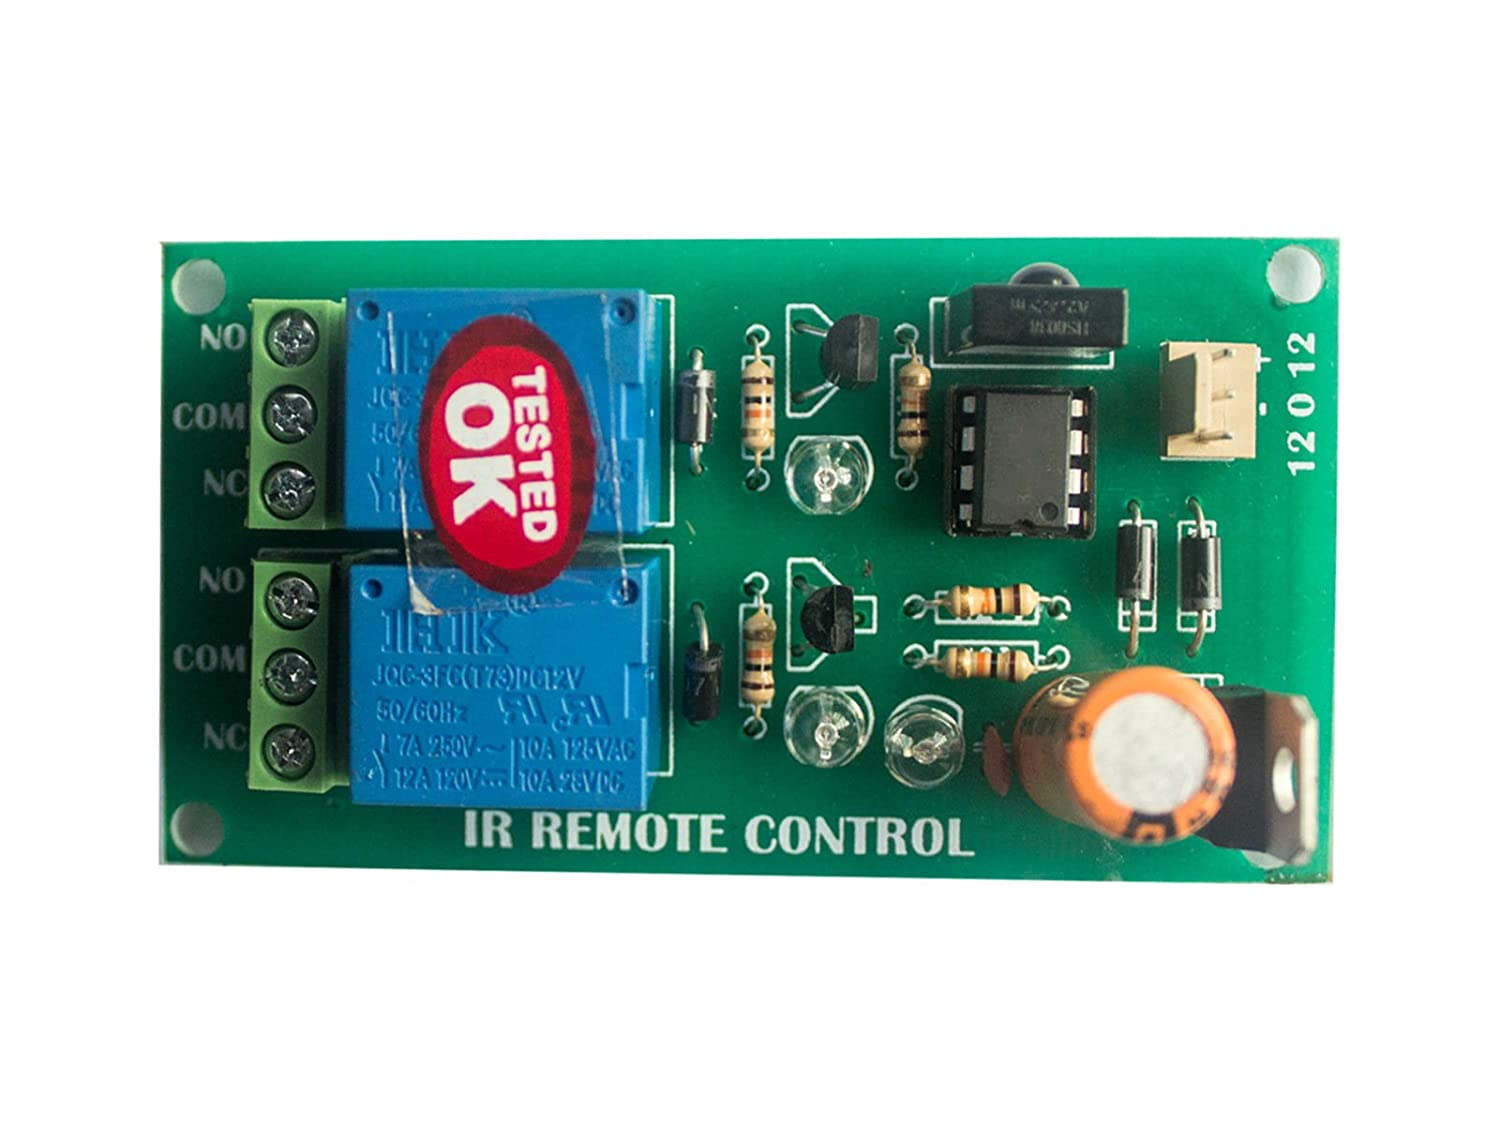 Wireless Infrared Ir Remote Control 2 Channel Board Home Circuit Industrial Automation Improvement